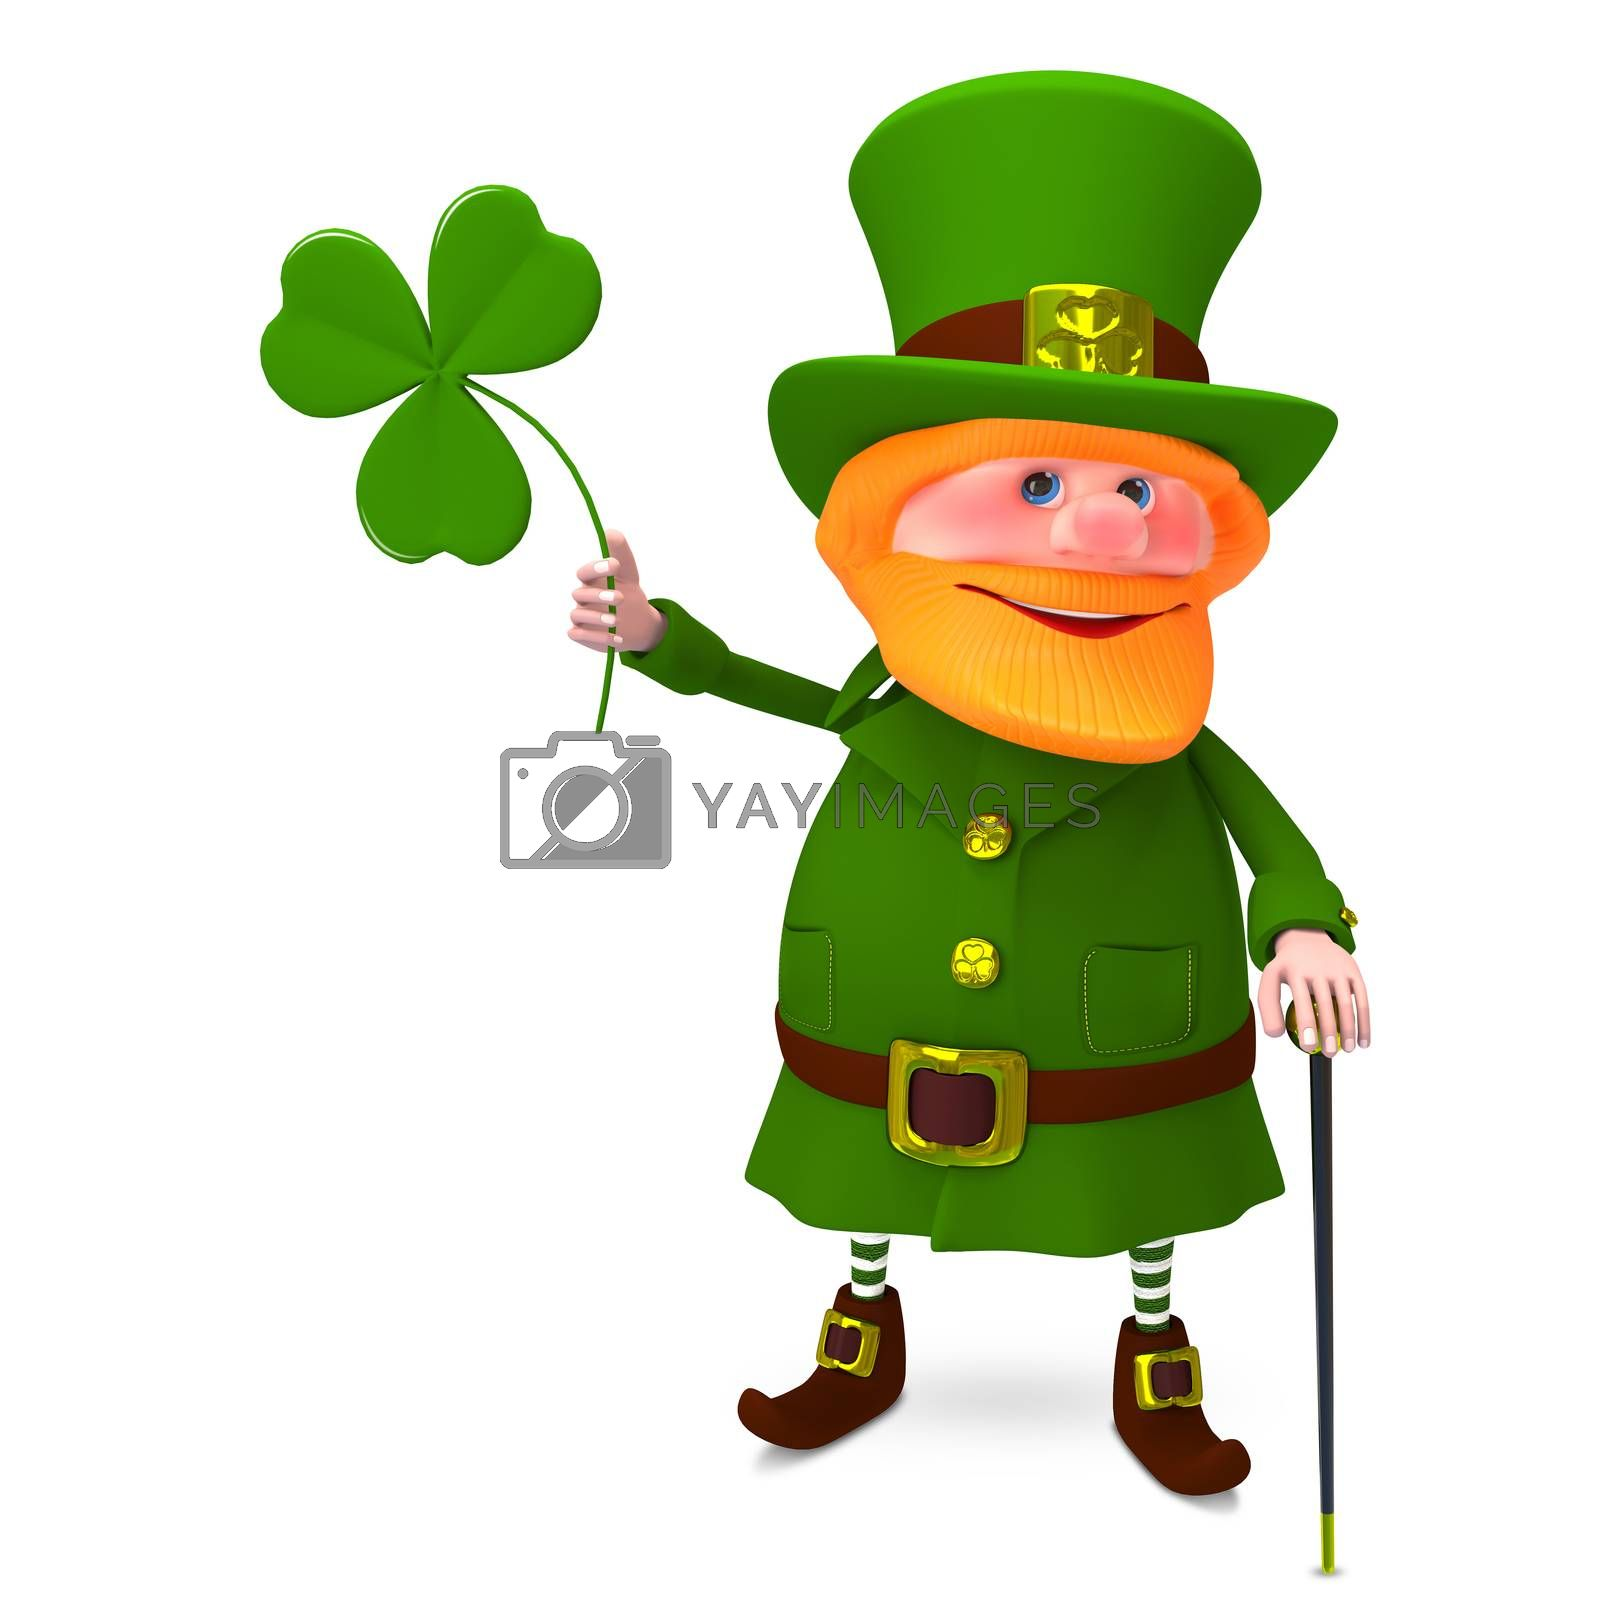 3D Illustration of Saint Patrick with Clover on a White Background